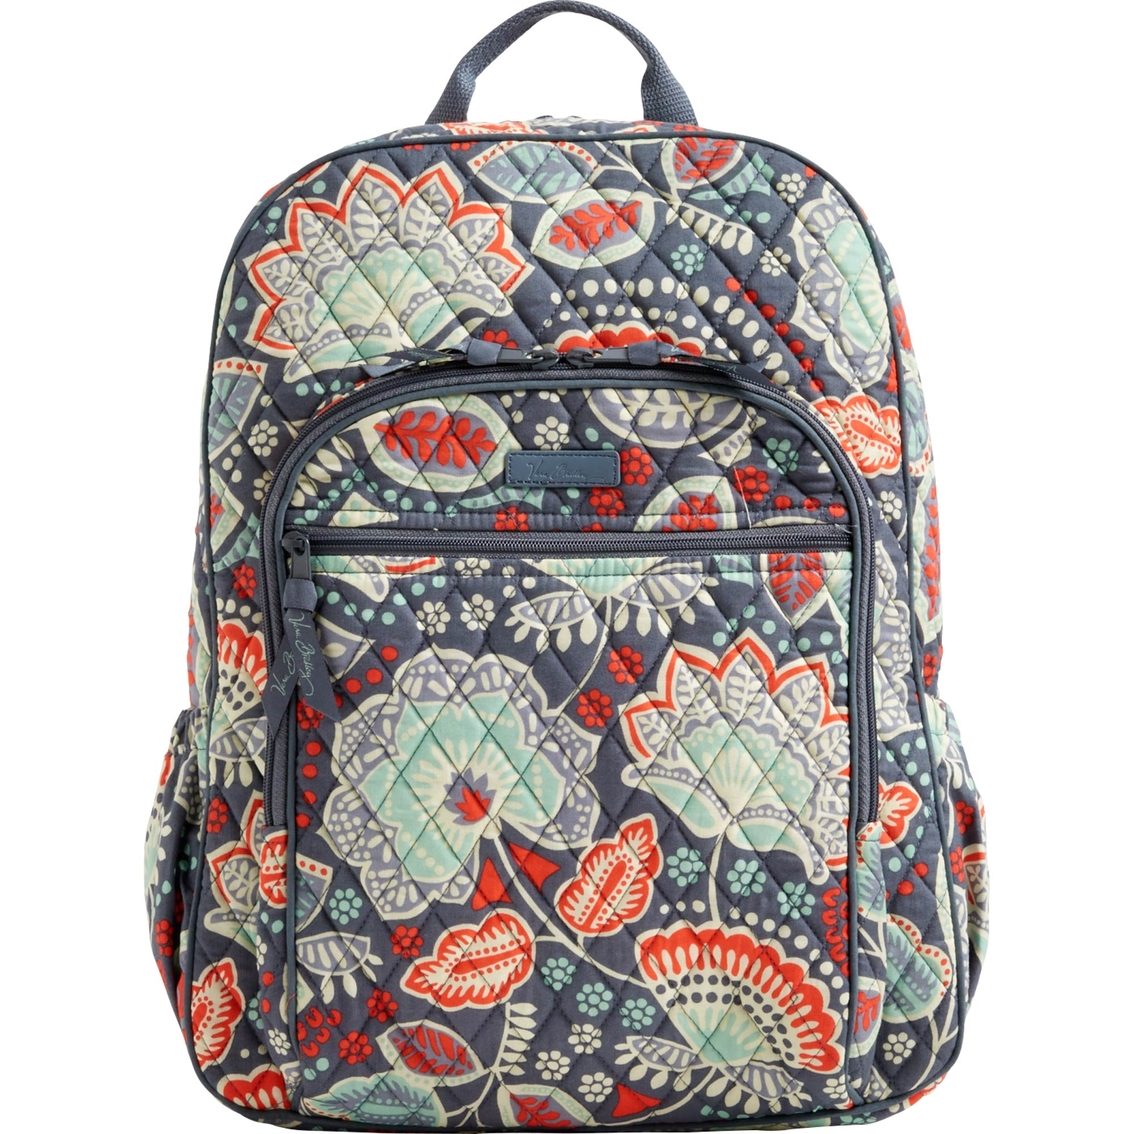 de69c5ca80d Vera Bradley Campus Backpack, Nomadic Floral   Shop By Pattern ...